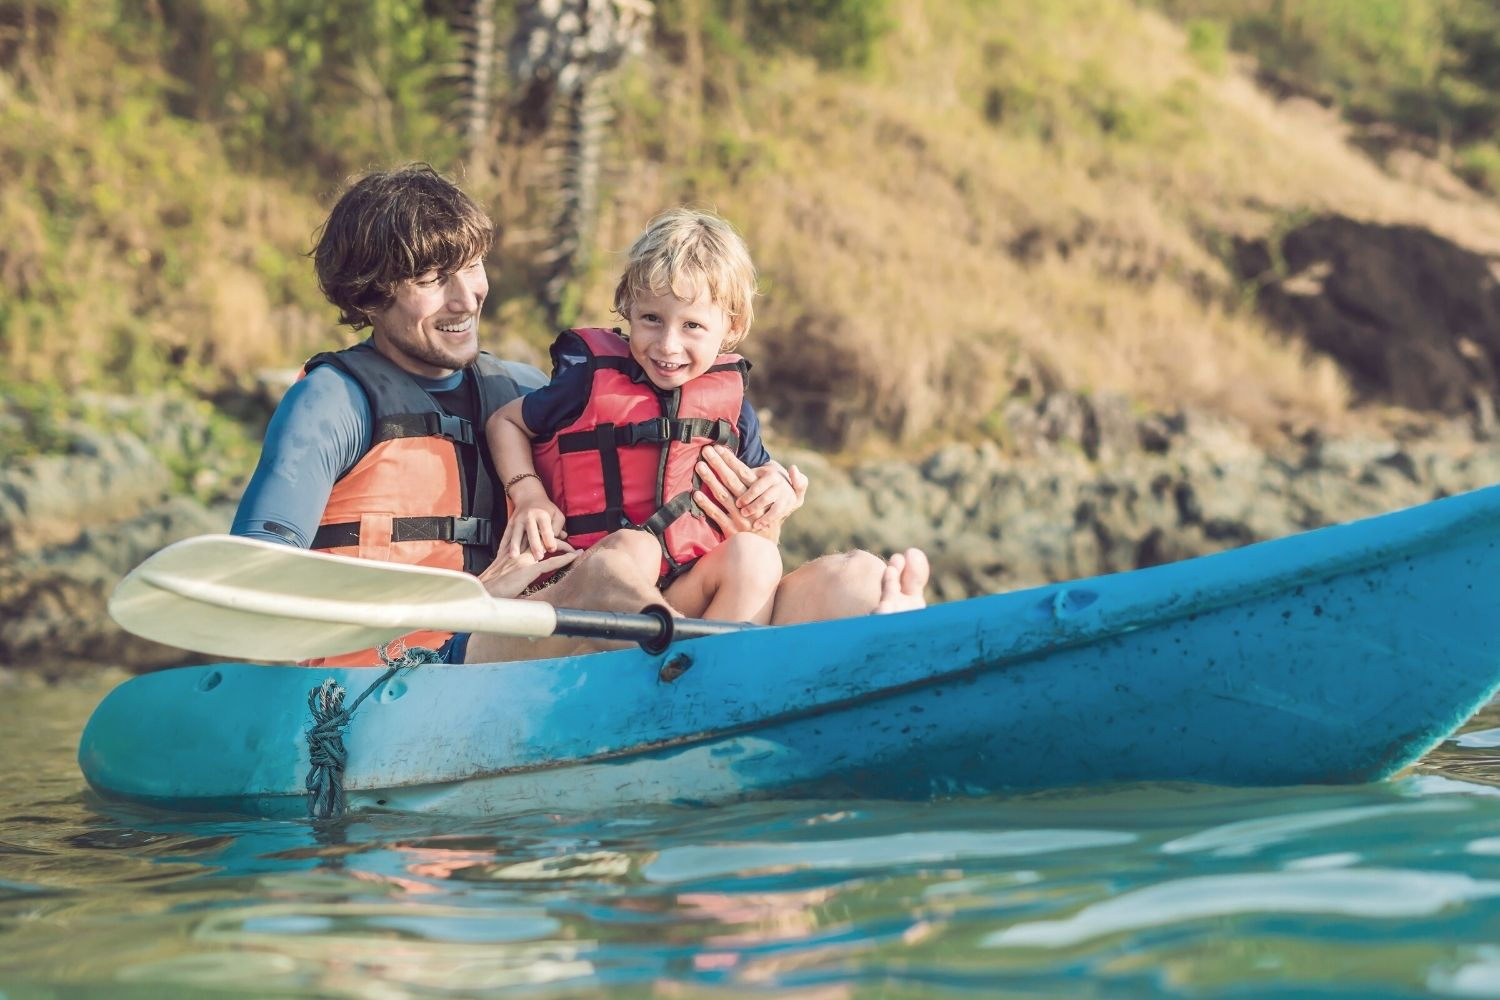 Introducing Kids to Kayaking: A Quick Parents' Guide